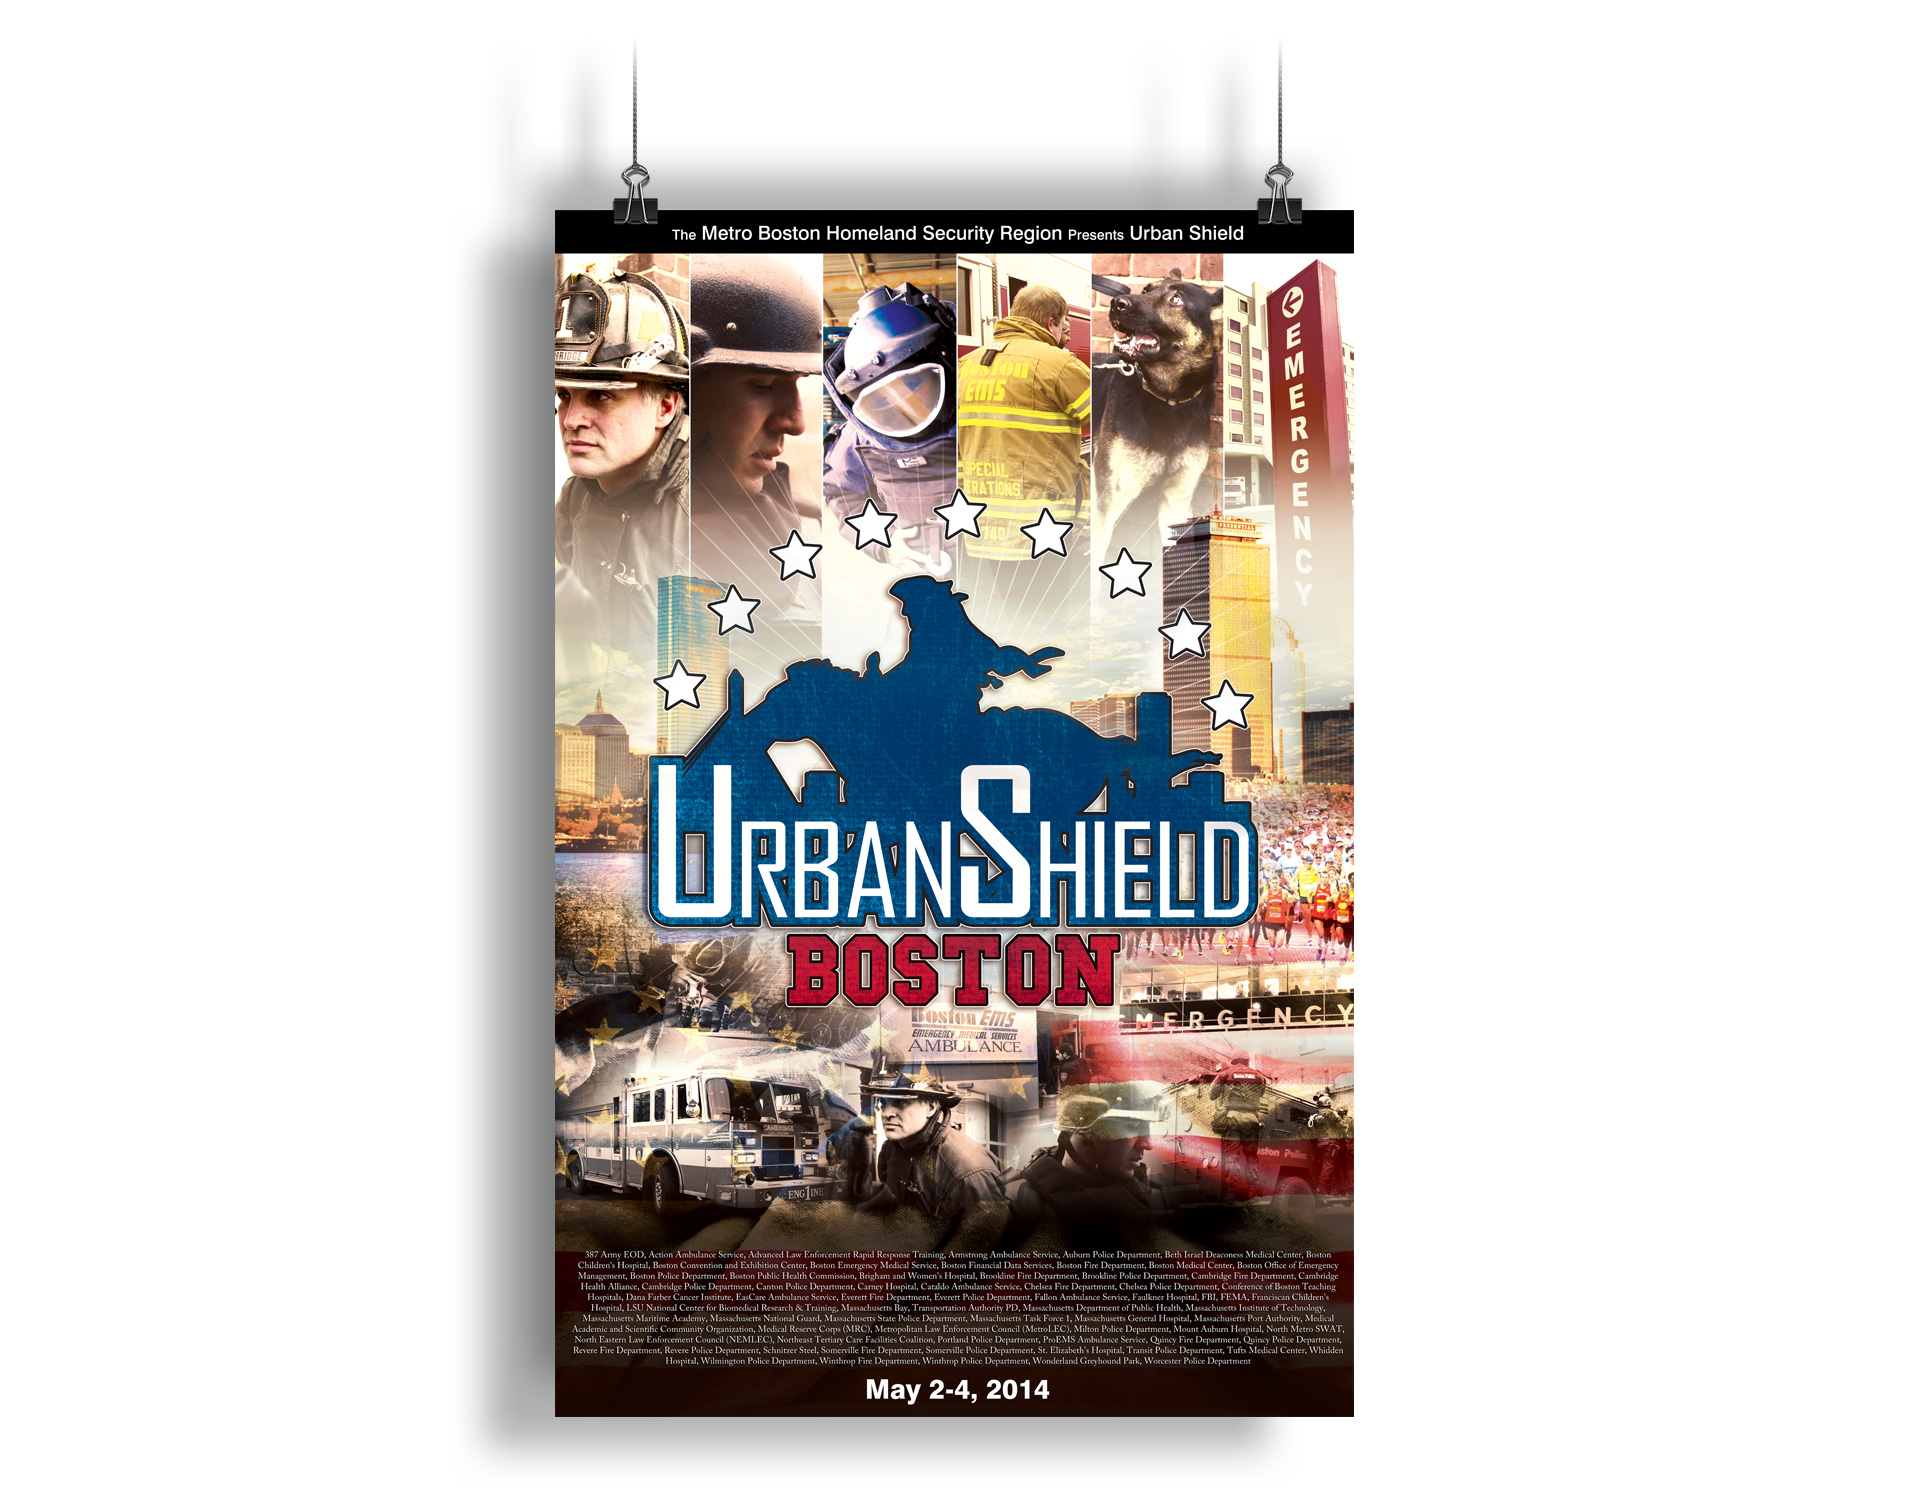 urban shield boston poster 03